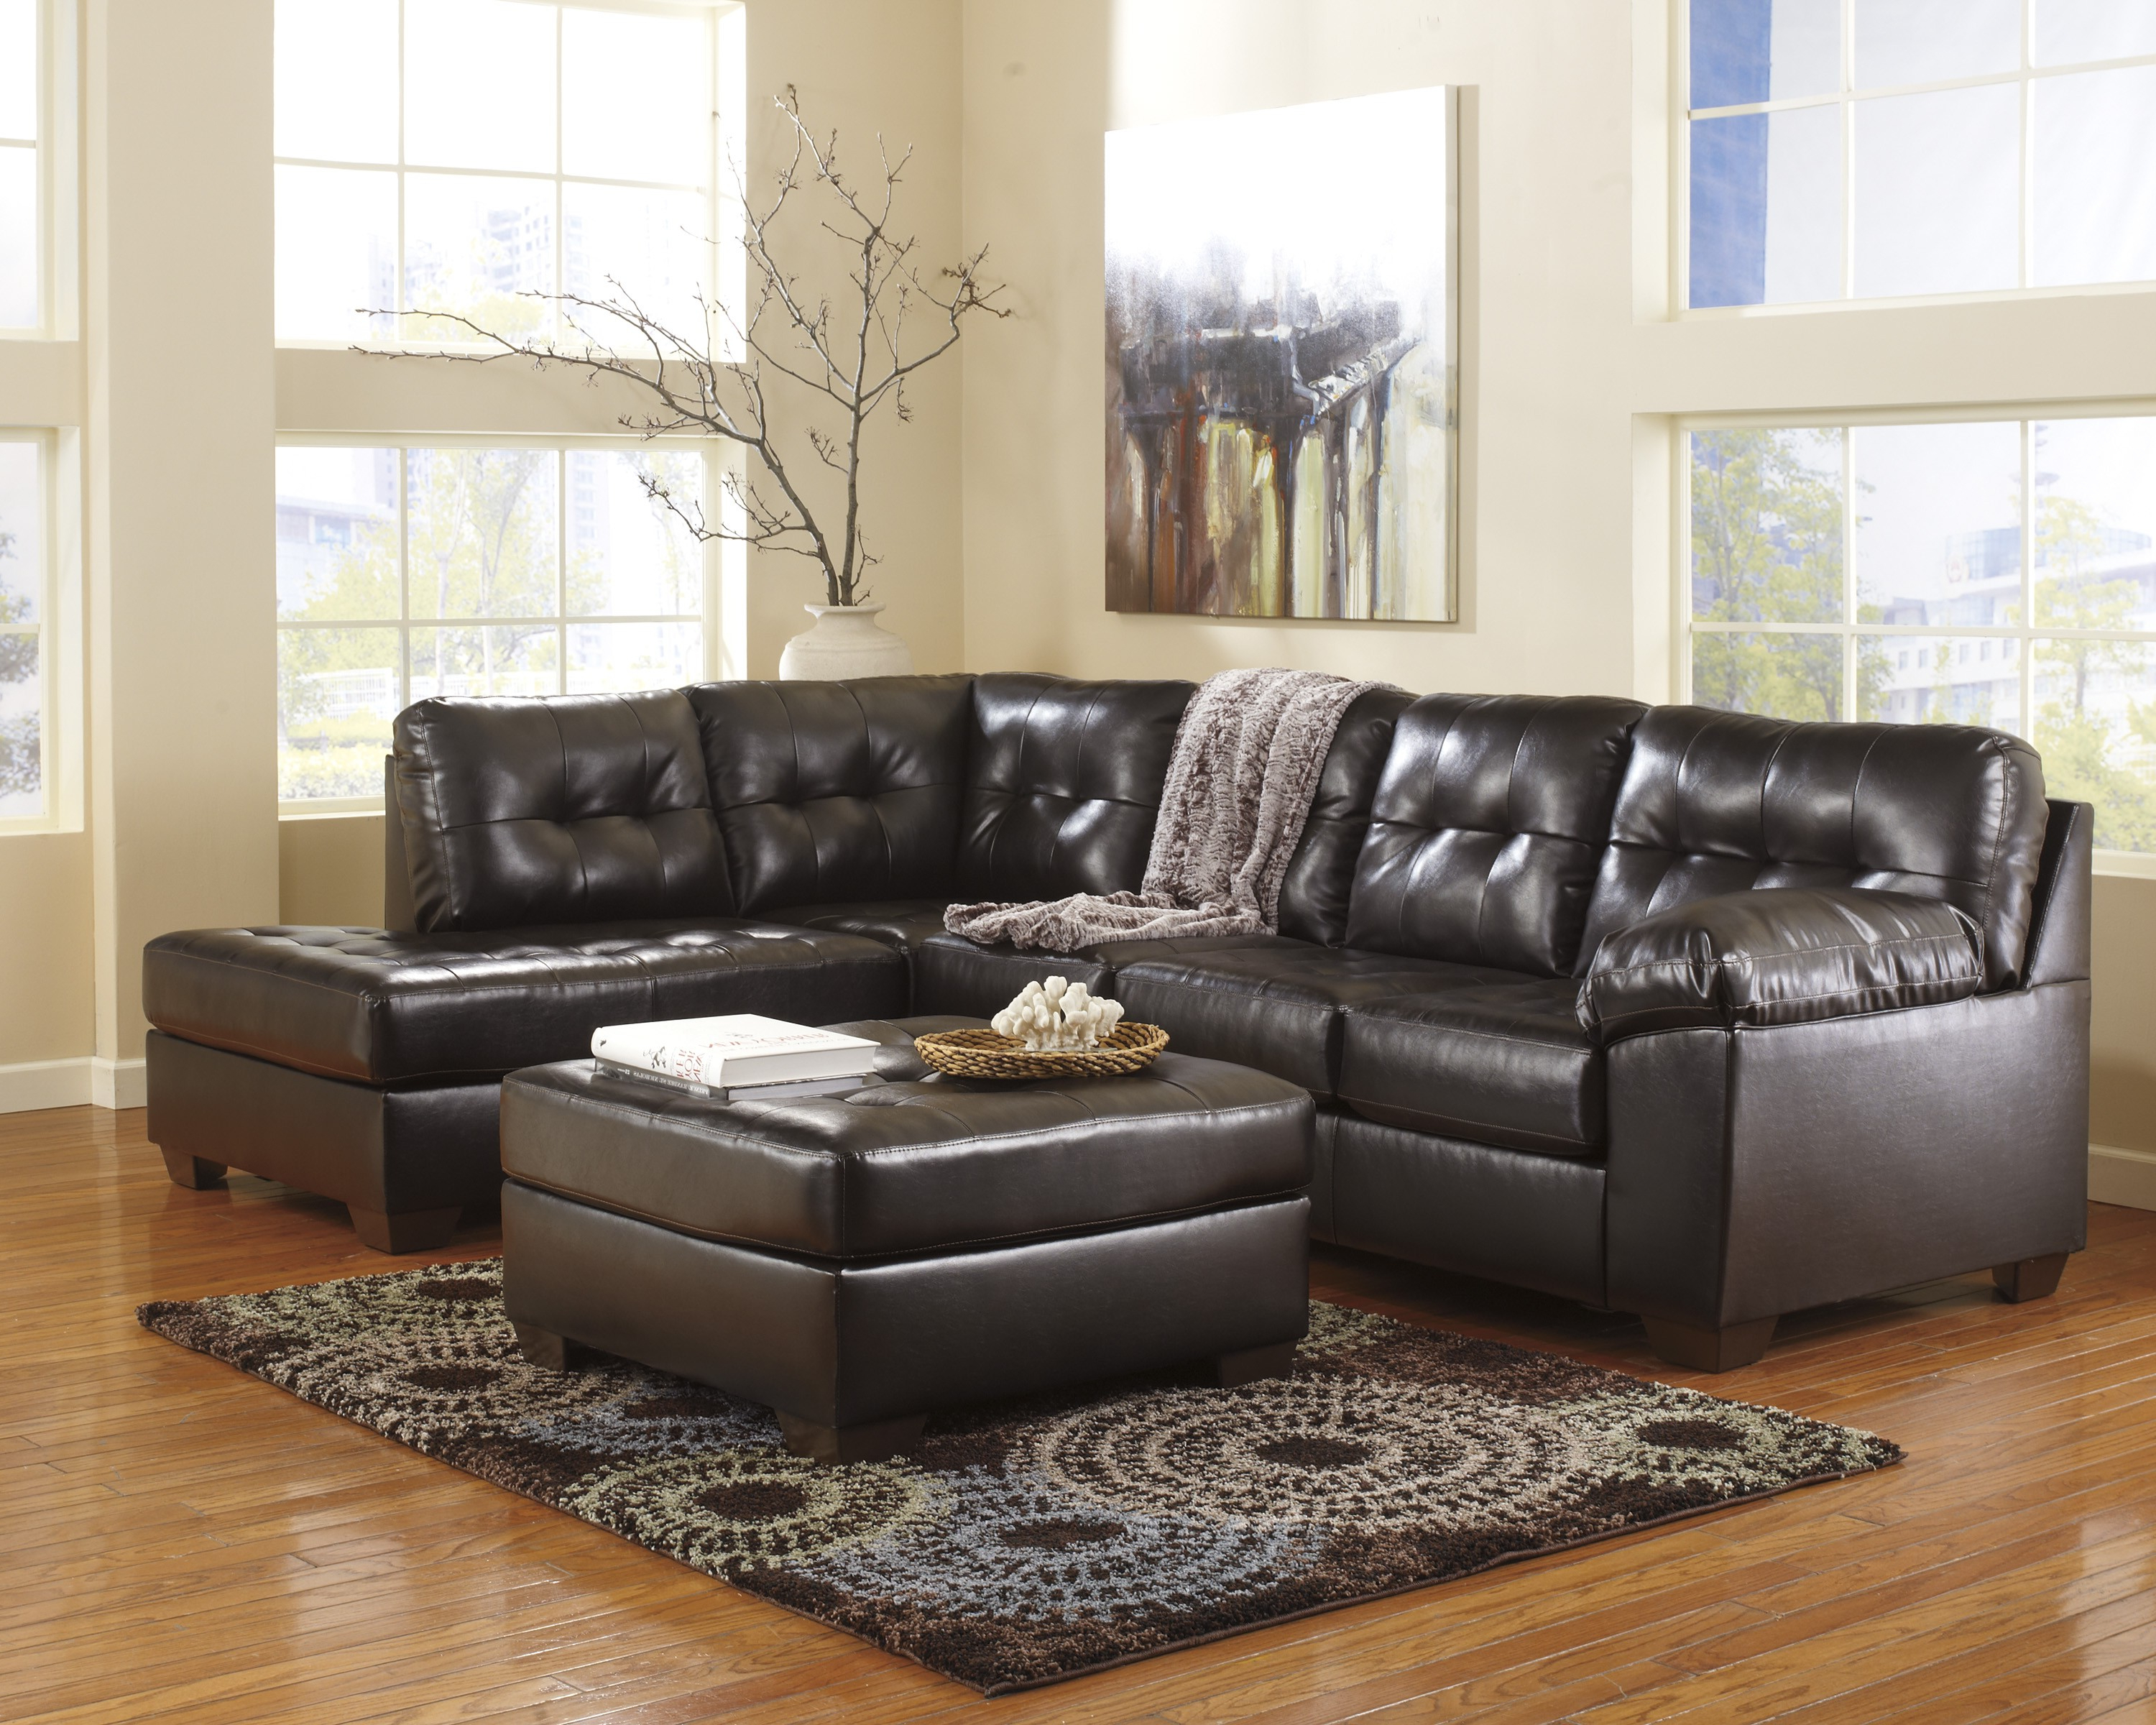 Baci Living Room With Regard To Norfolk Chocolate 6 Piece Sectionals With Laf Chaise (Gallery 5 of 20)